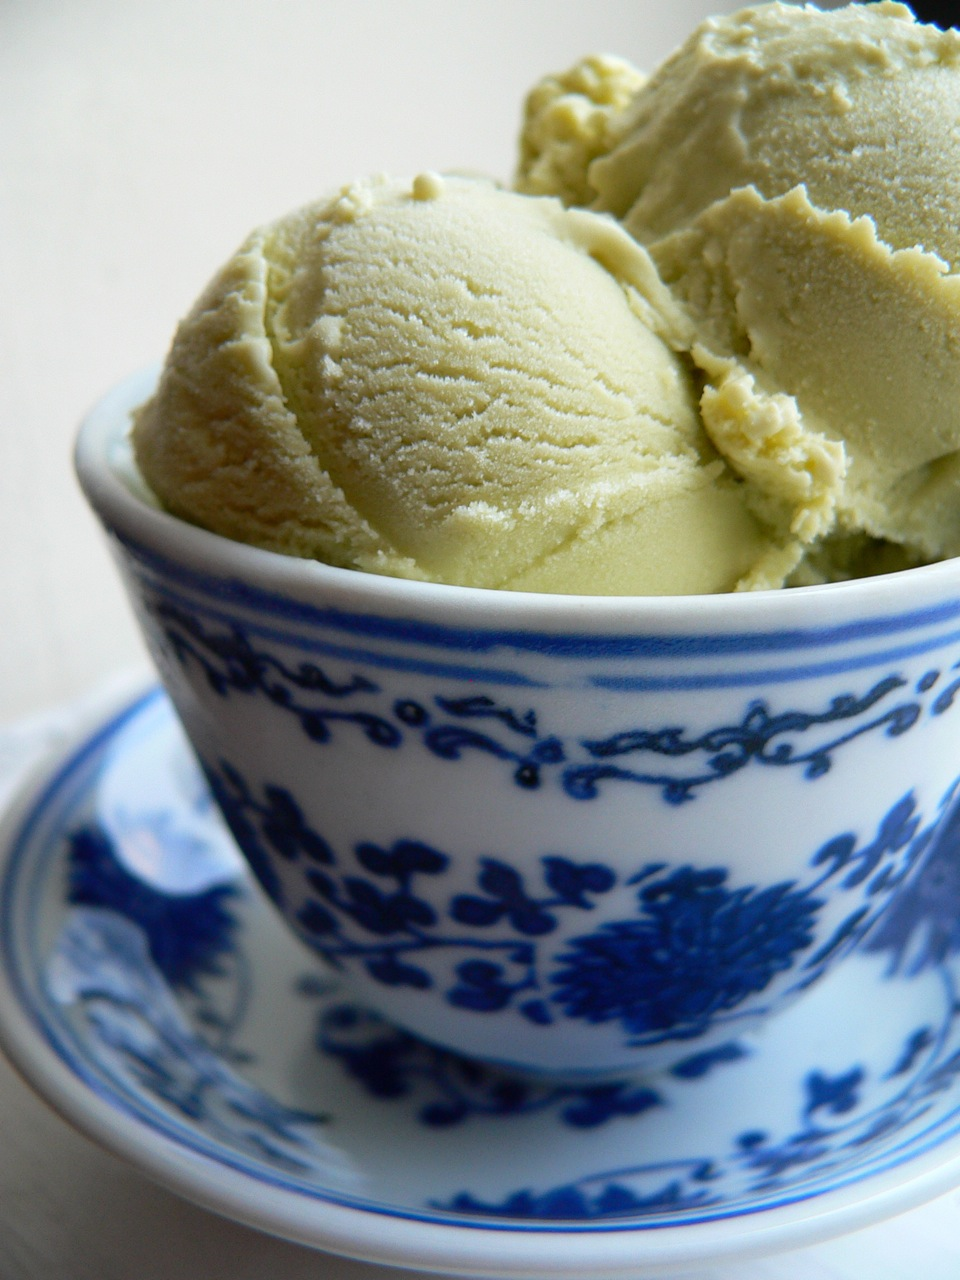 Green Tea Ice Cream | The Frozen Fix: Ice cream, sorbet, and frozen ...